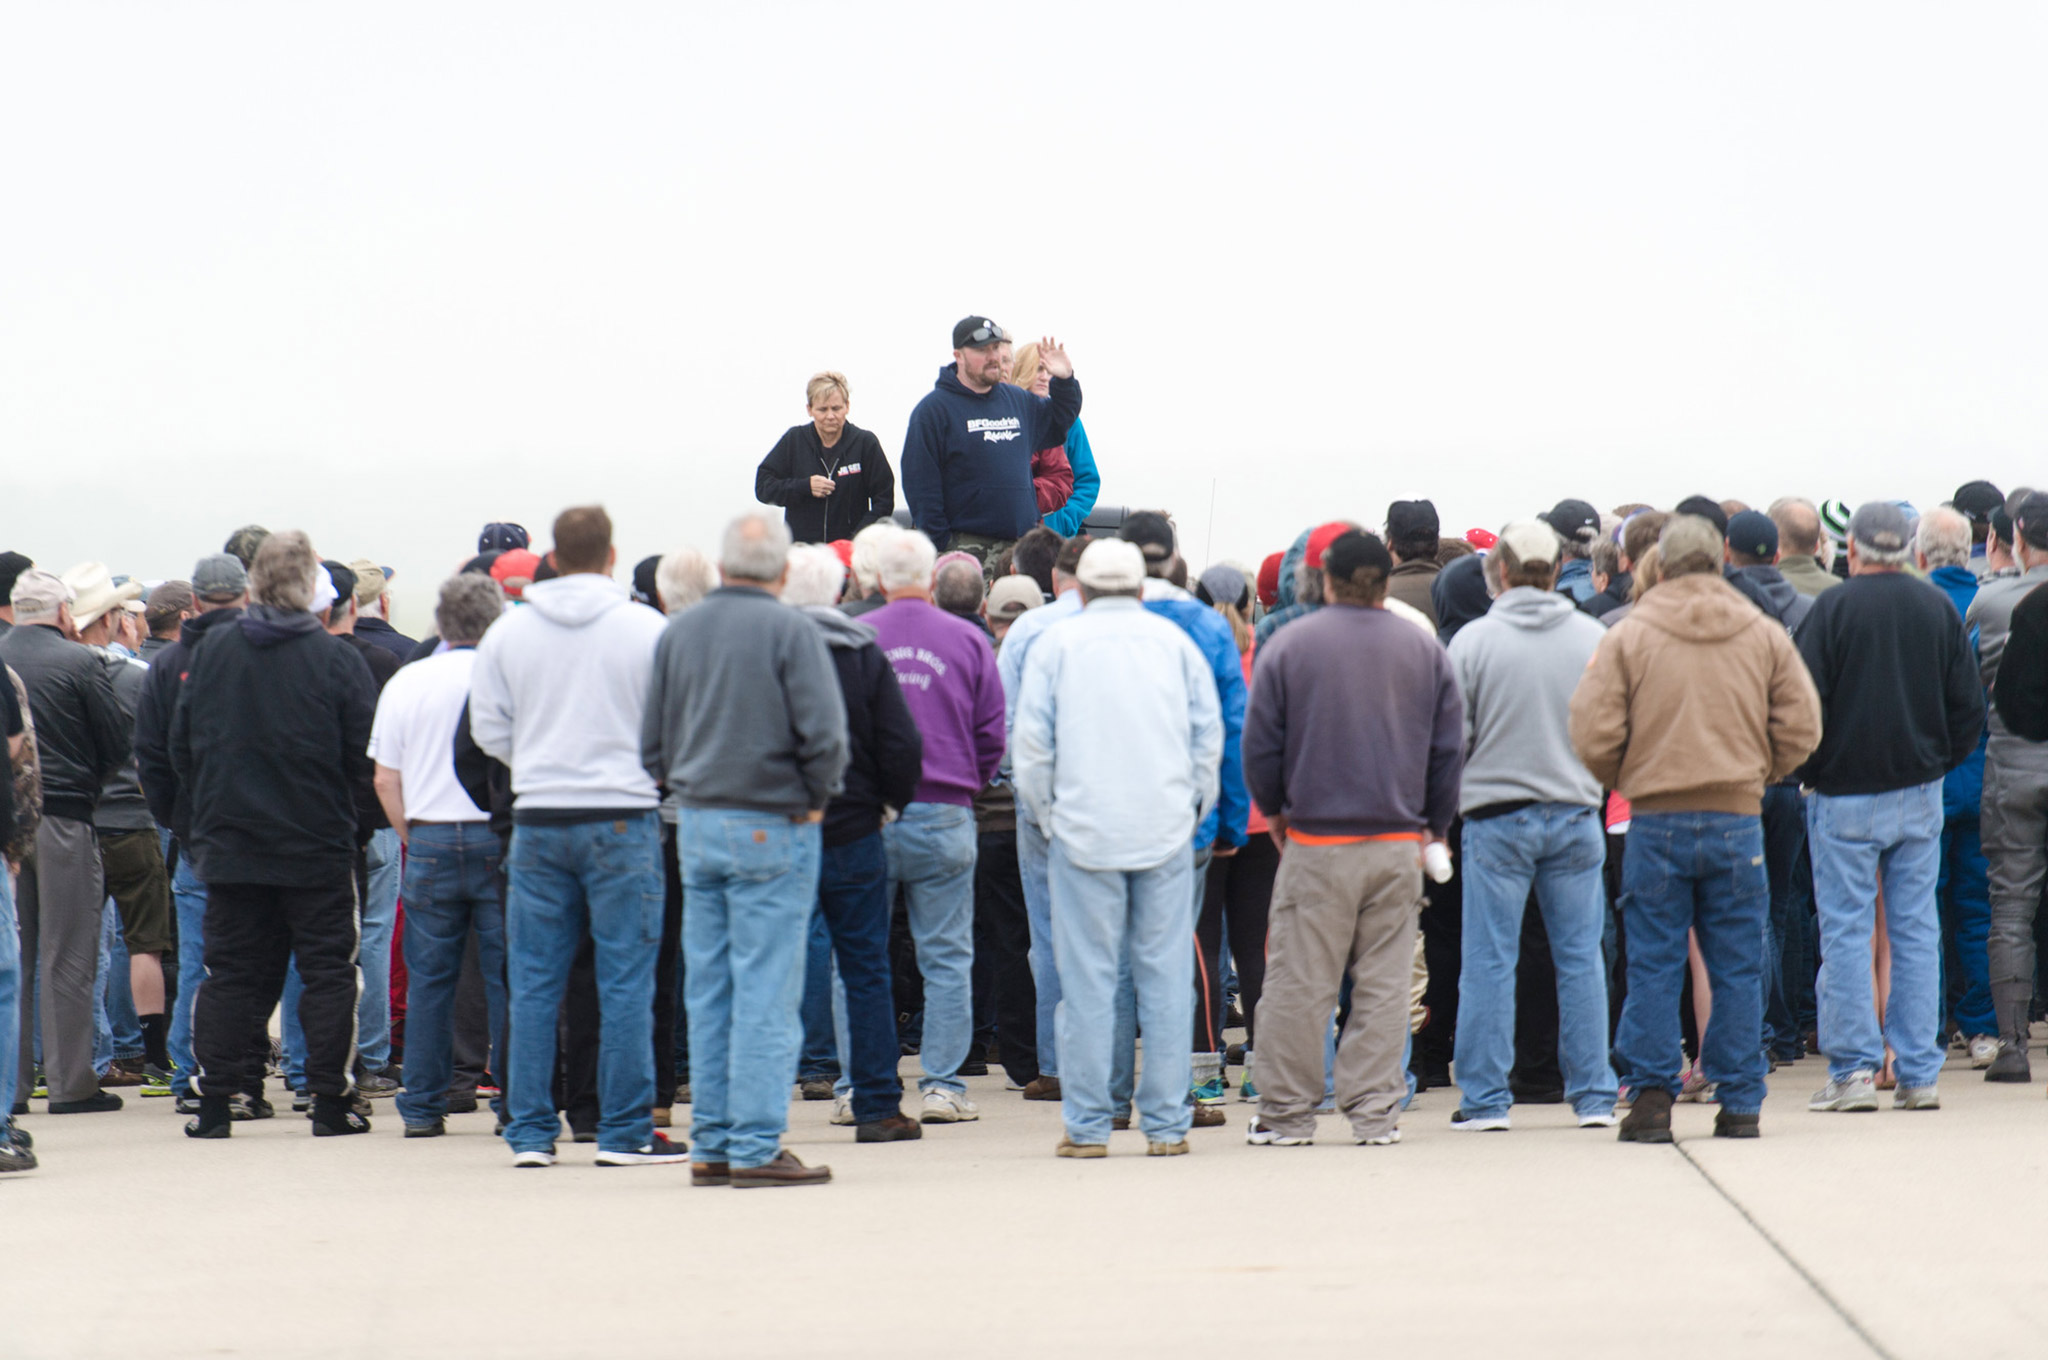 Tonya Turk and Brian Lohnes take turns addressing the crowd on safety, race procedures, and other ECTA announcements at the driver meeting prior to the race.